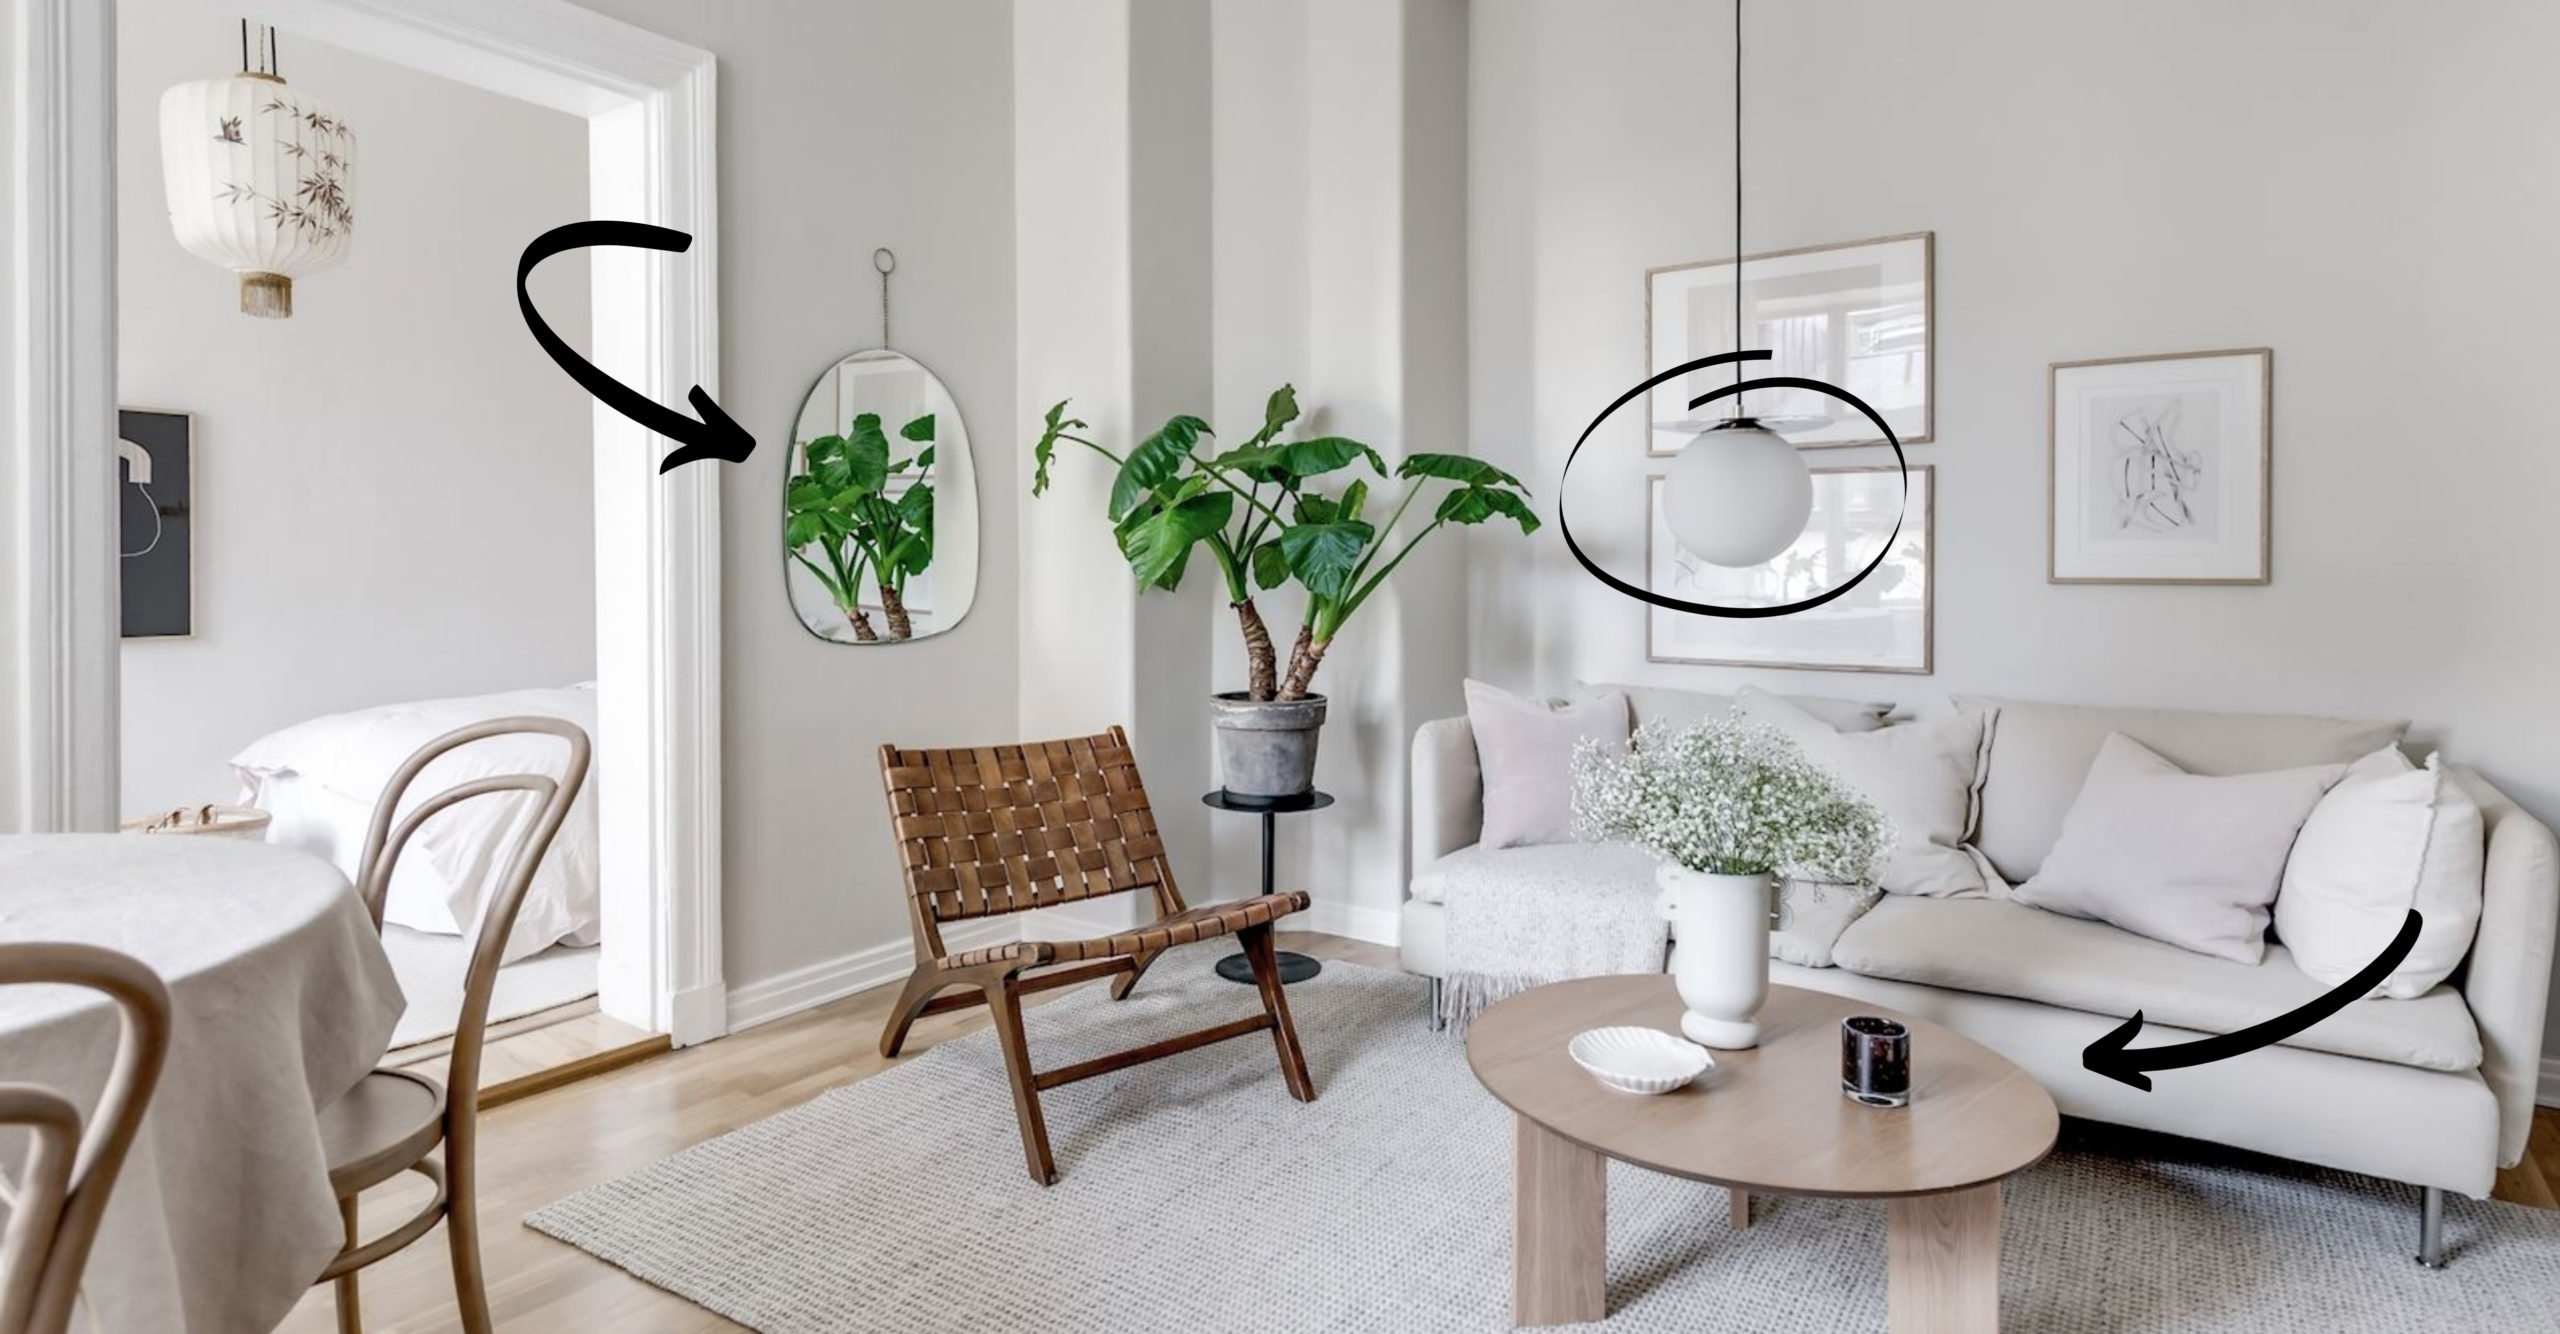 4 Foolproof Ways To Make Your Space Look (And Feel) Bigger - Bobby Berk